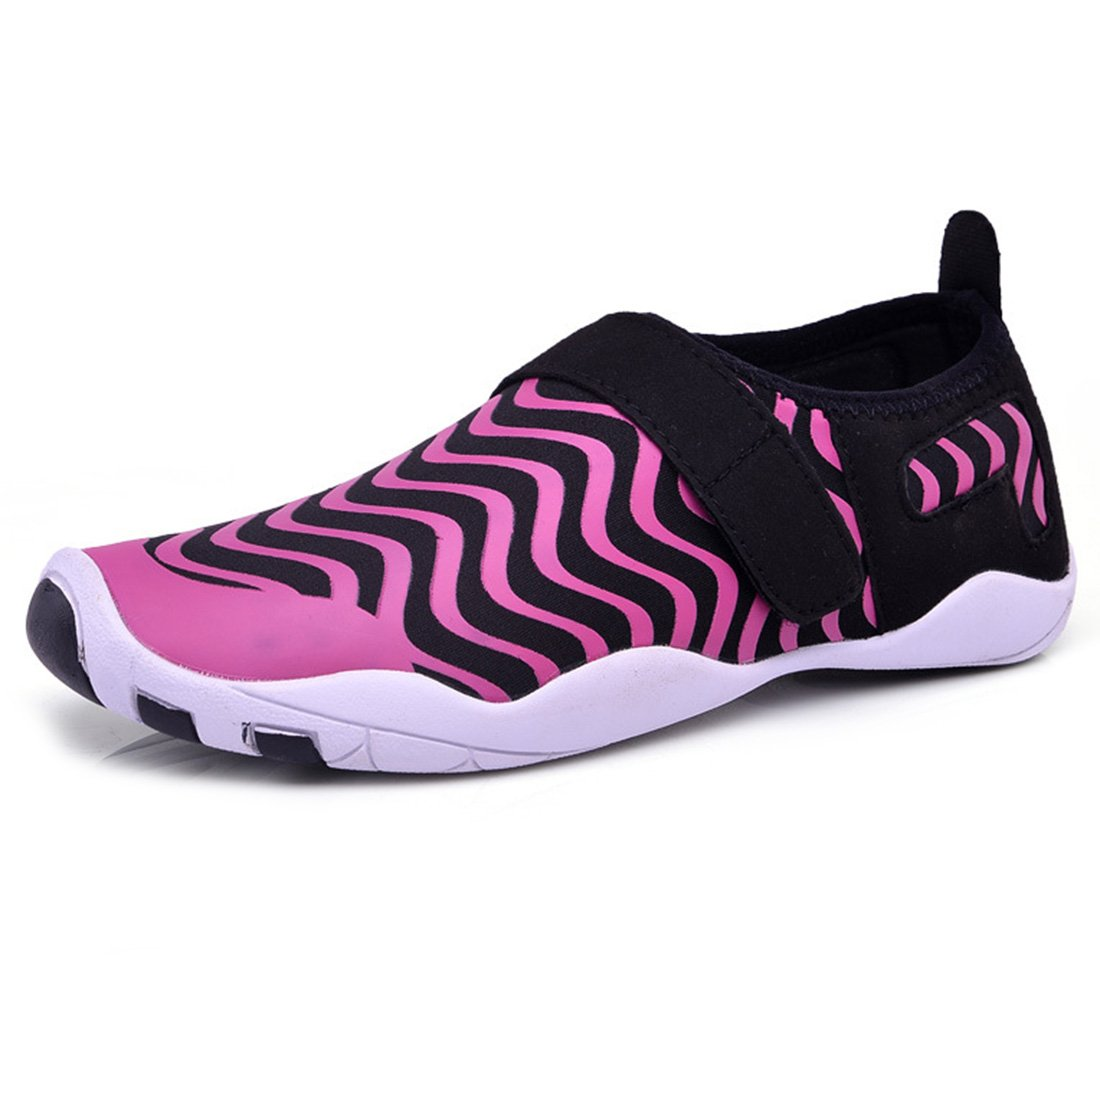 Water Shoes Quick Dry Aqua Shoes Barefoot Shoes for Water Sports Rubber Sole B07DMGGXSJ EU Size 37(US Size Women 6)|Rosy